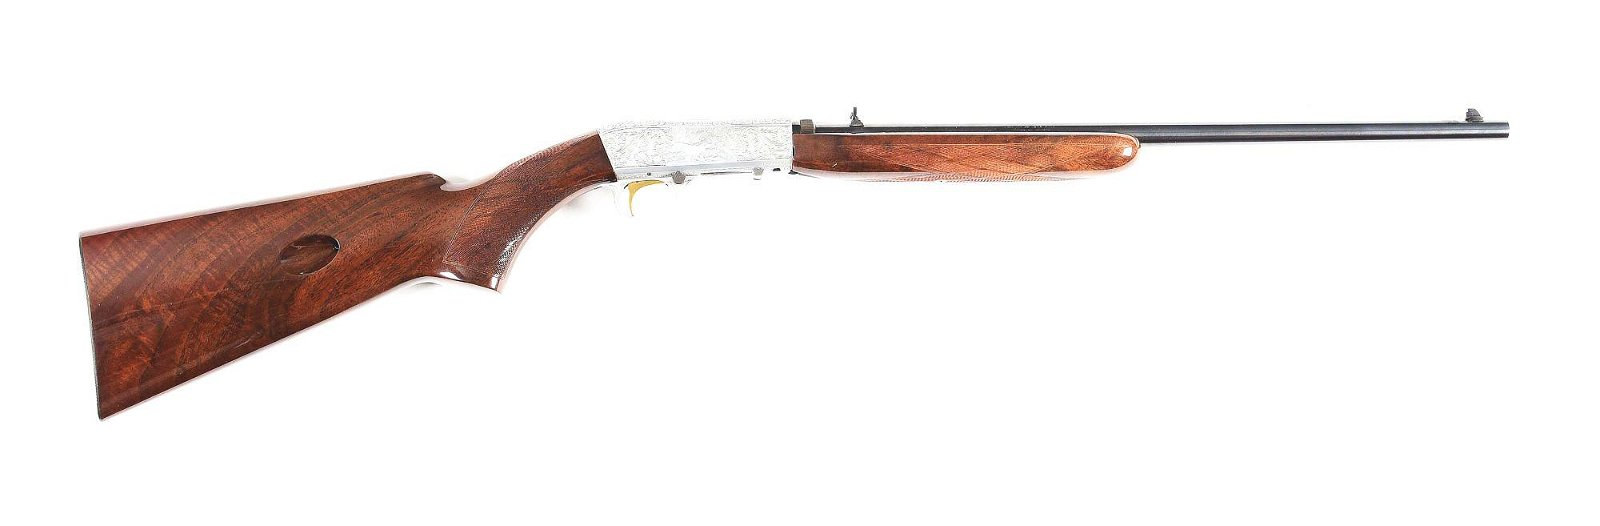 (M) GRADE III BROWNING SEMI AUTOMATIC .22 RIFLE.